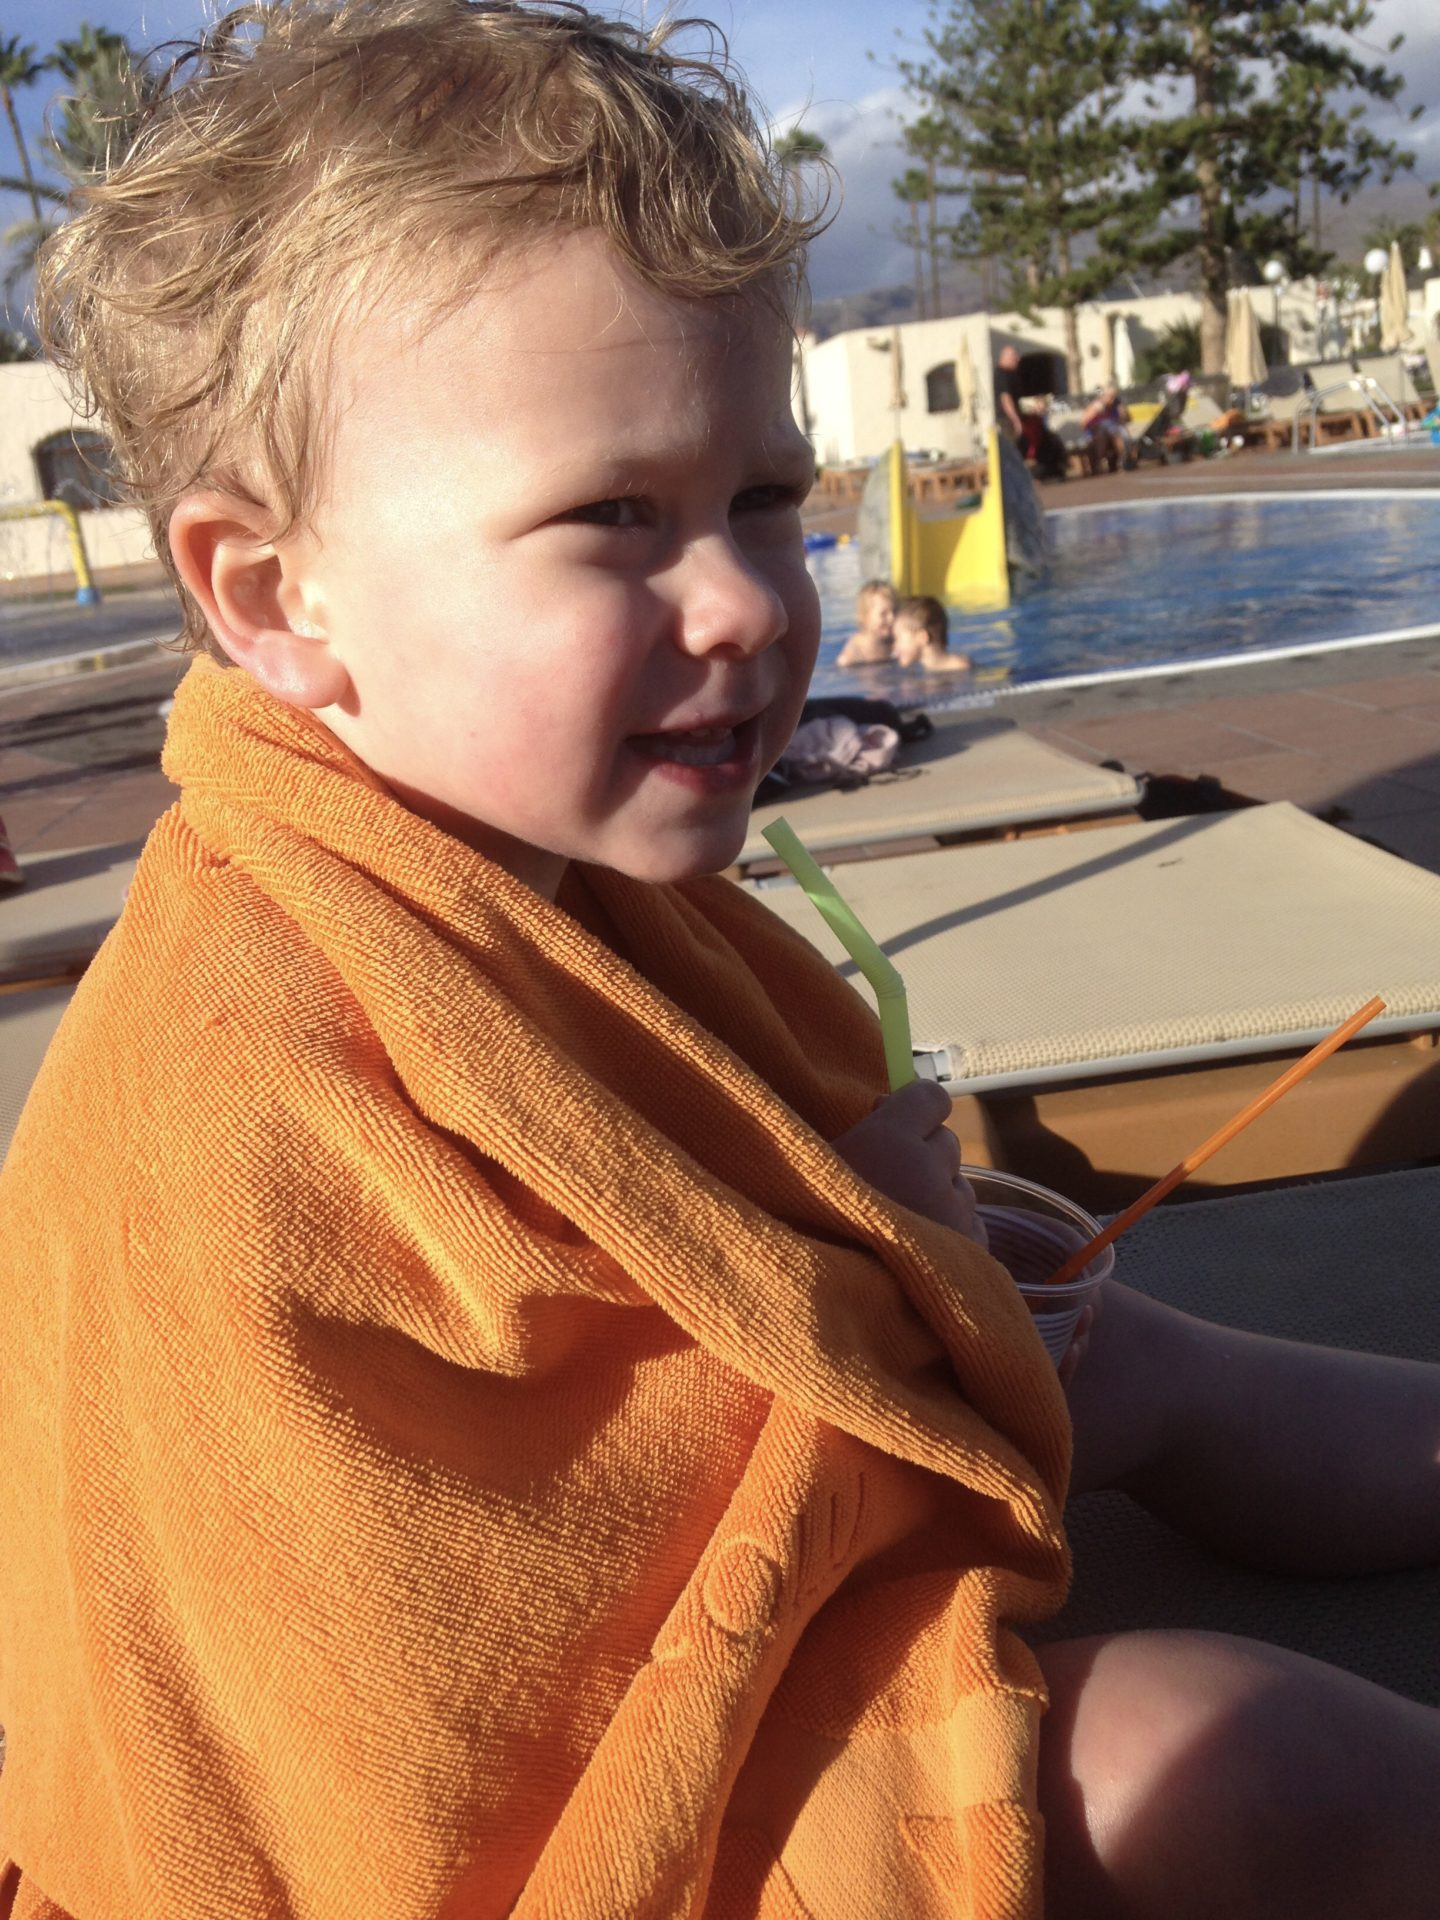 Easy Holidays - Thing 1 wrapped in a towel after a long swim